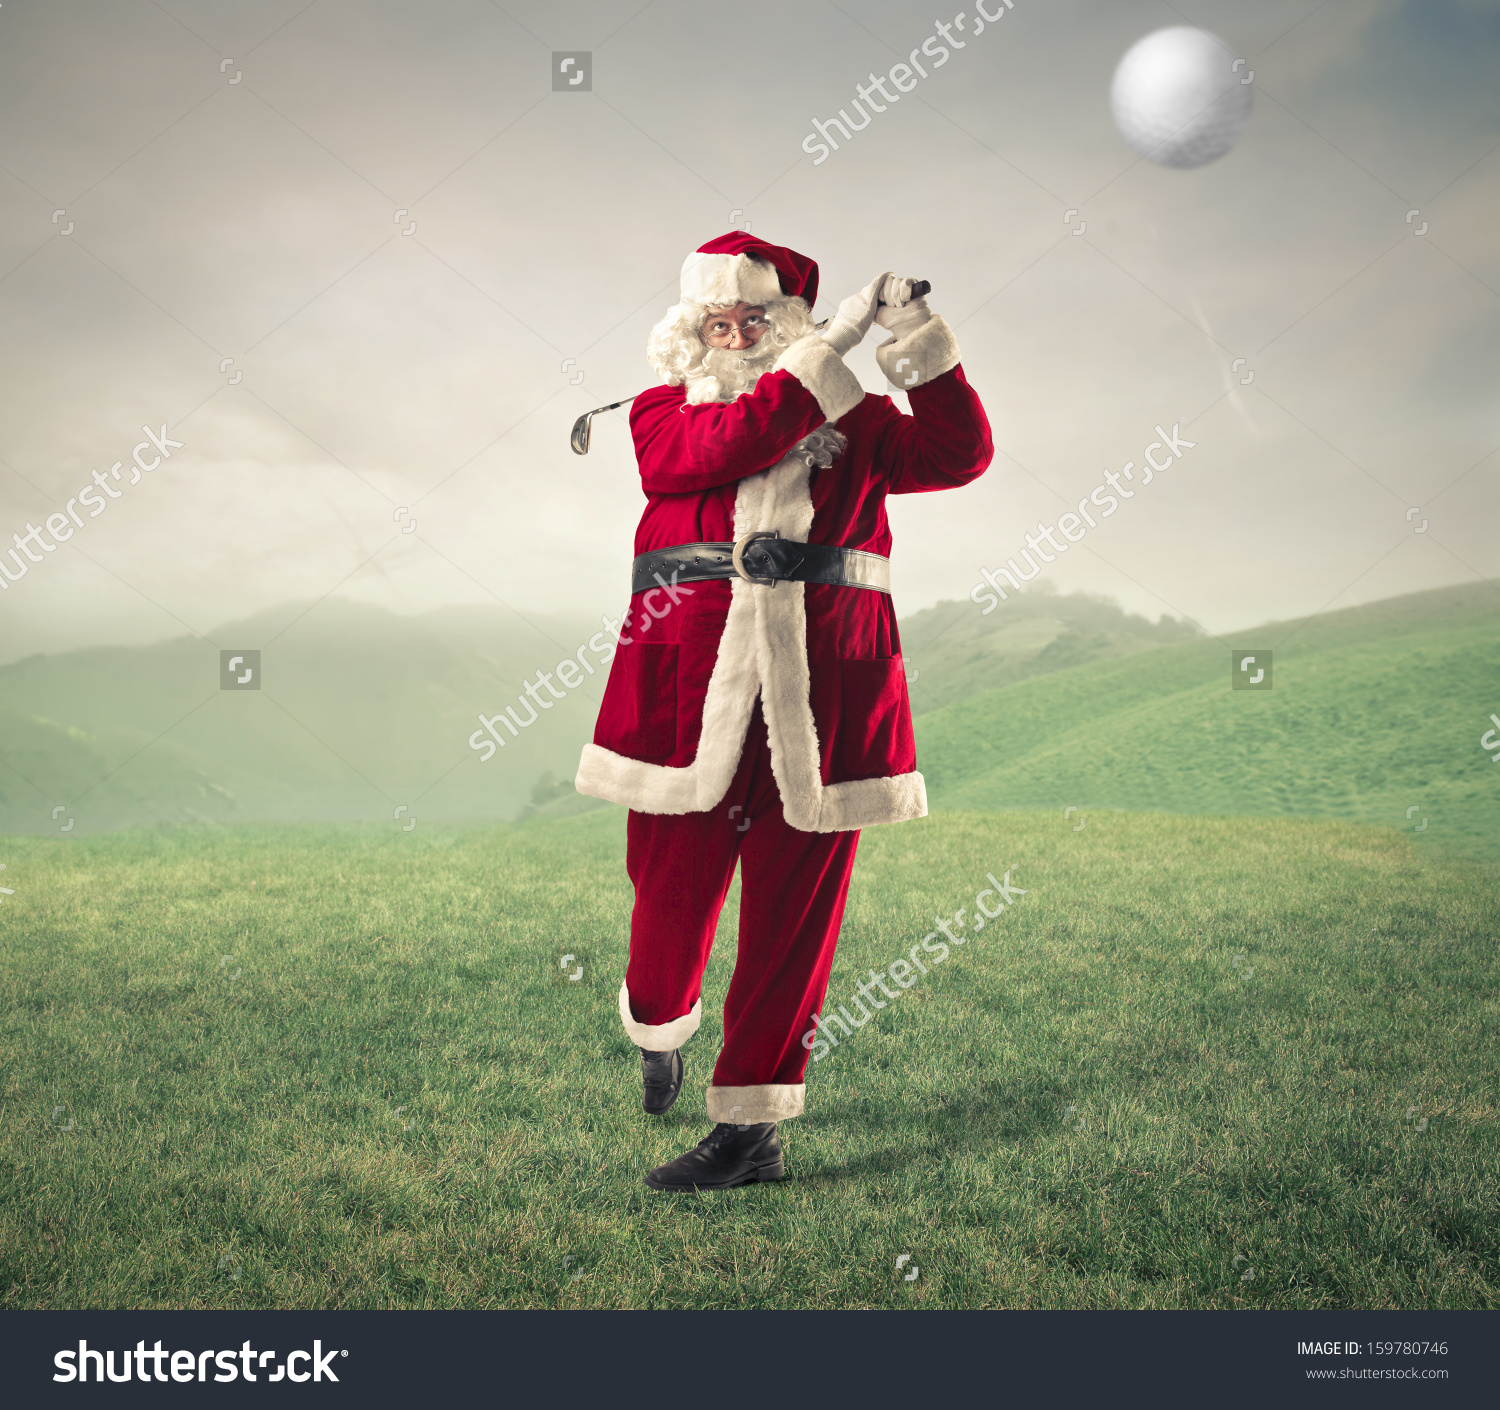 Santa Claus Playing Golf Stock Photo 159780746 : Shutterstock.